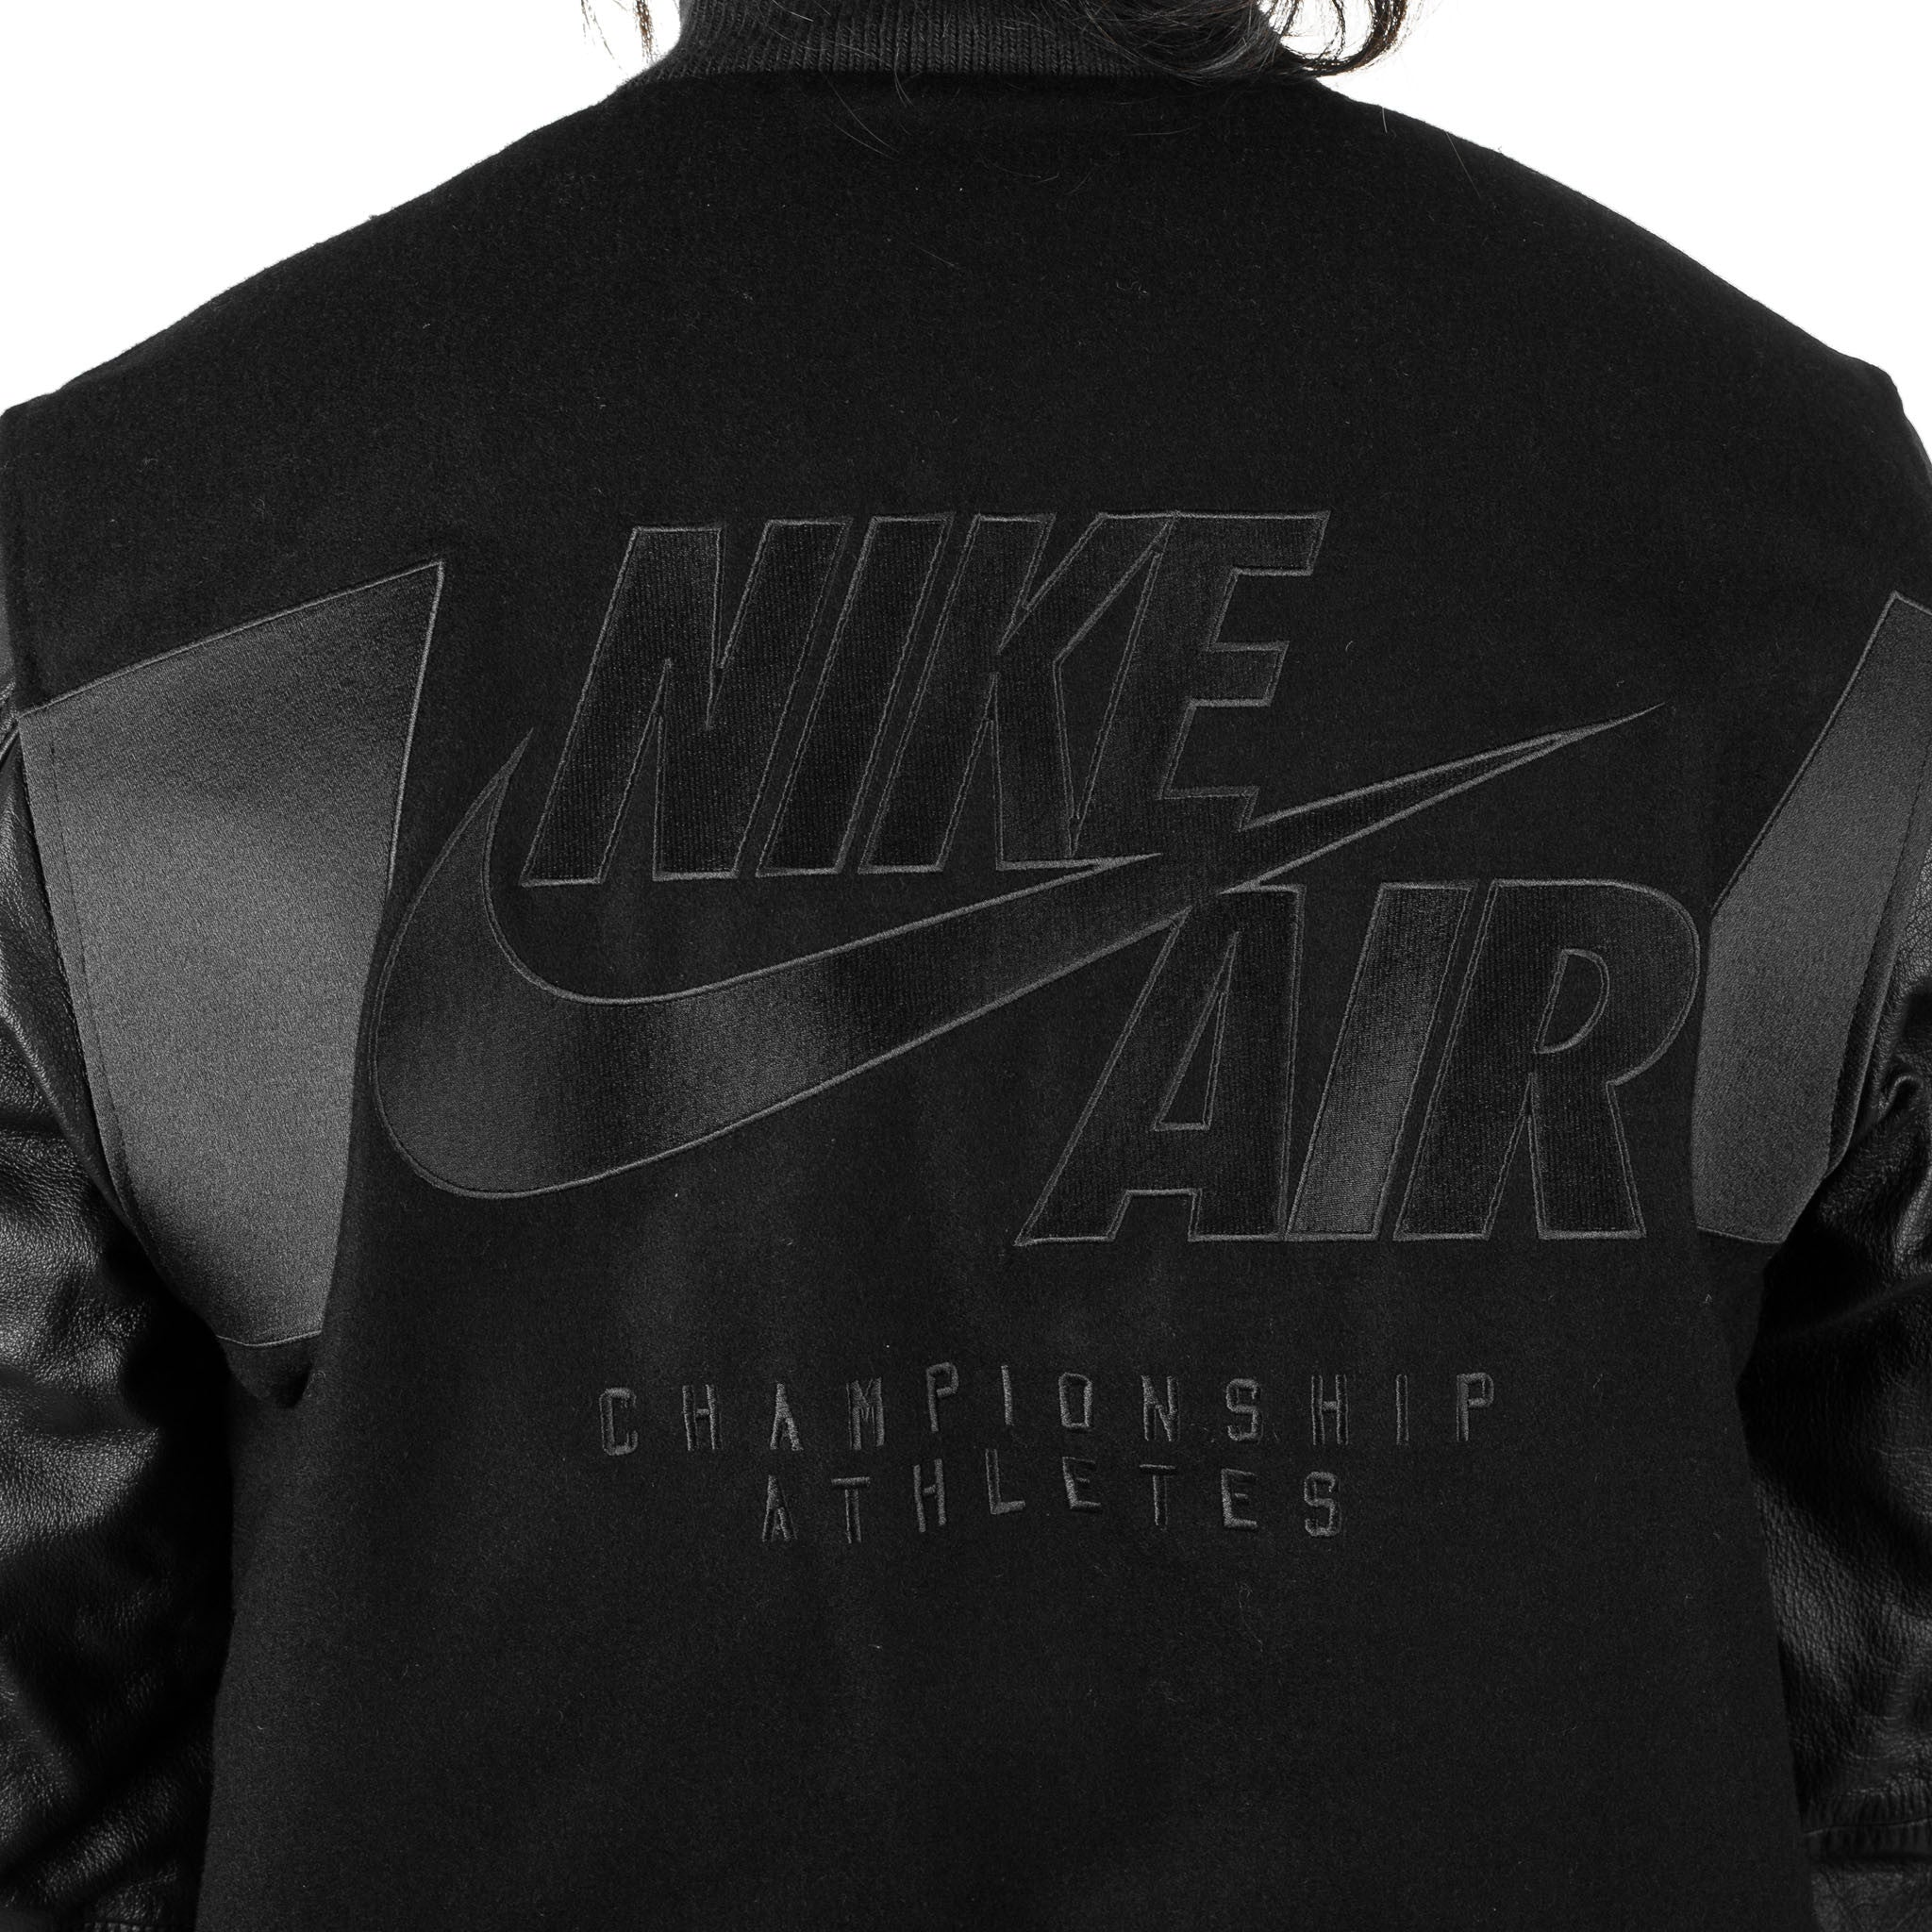 P Nike Destroyer Jacket 802644-010 Black